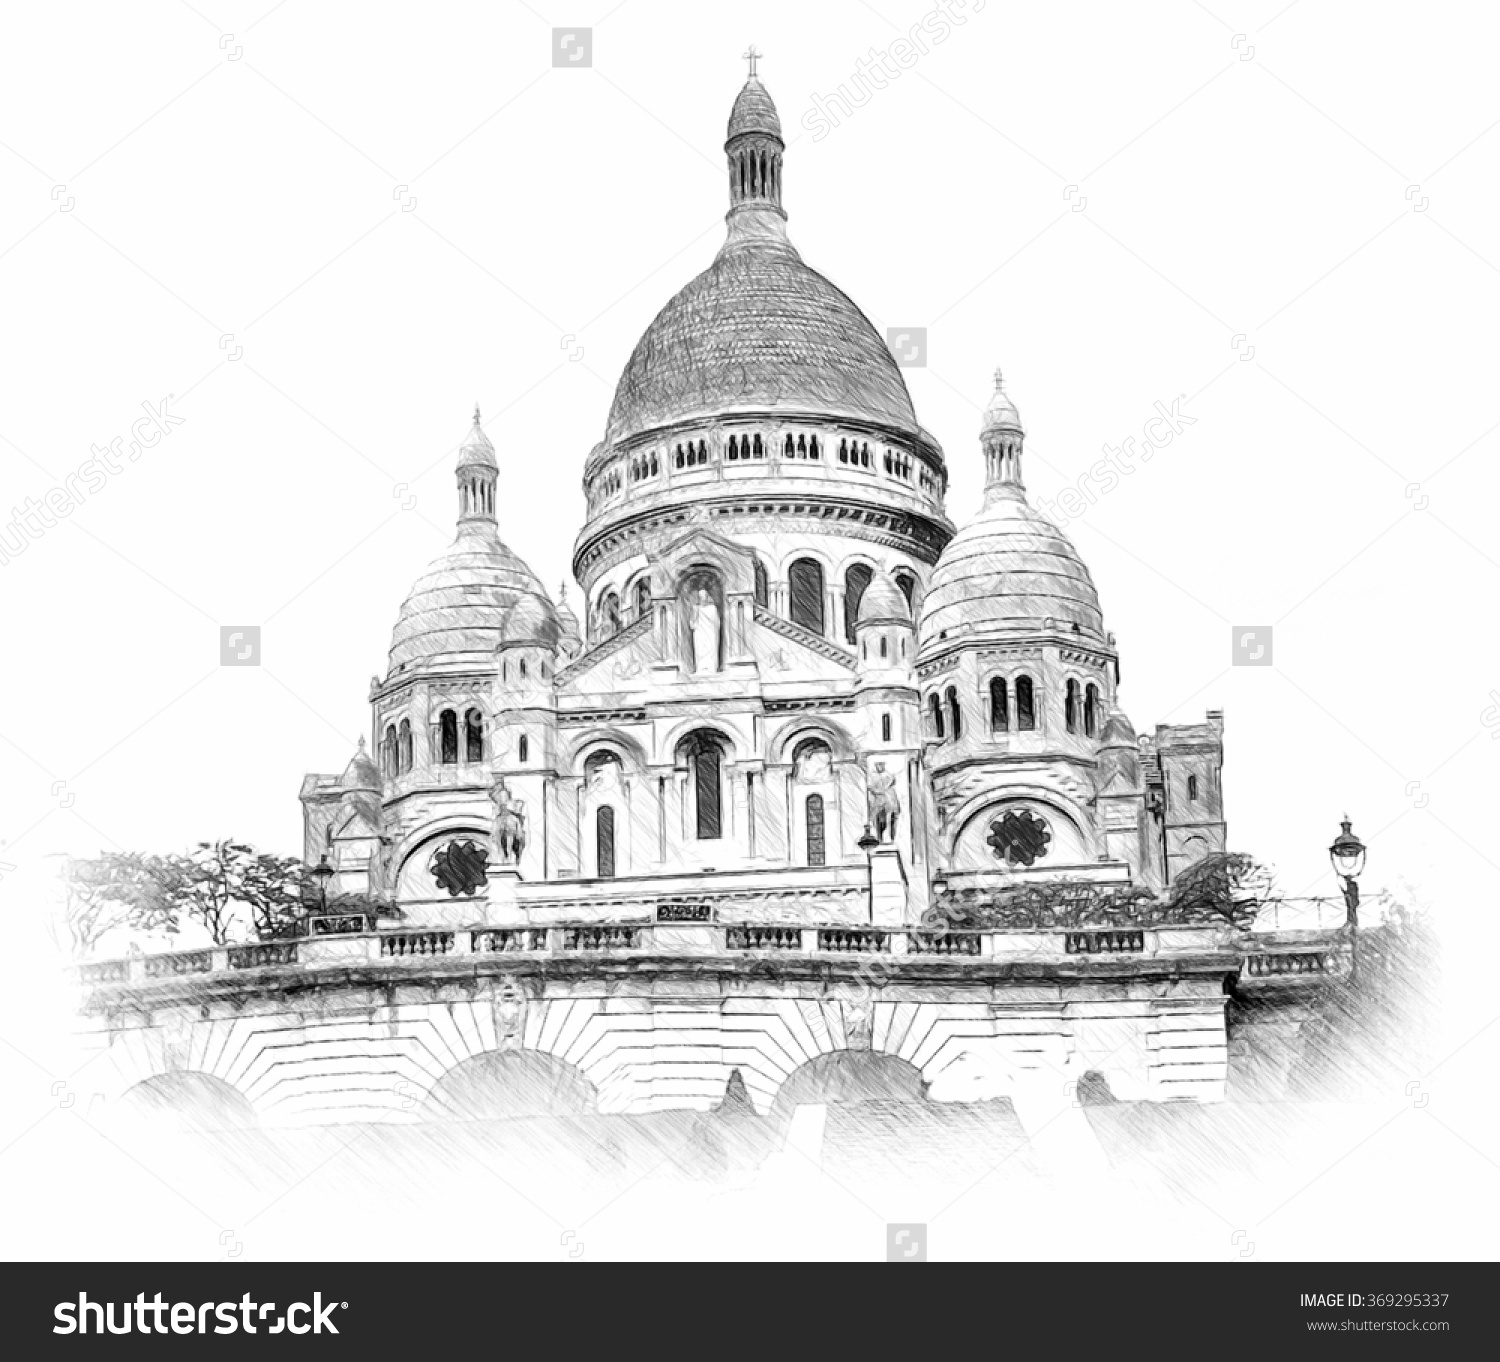 Basilica Sacre Coeur Montmartre Paris Illustration Stock.